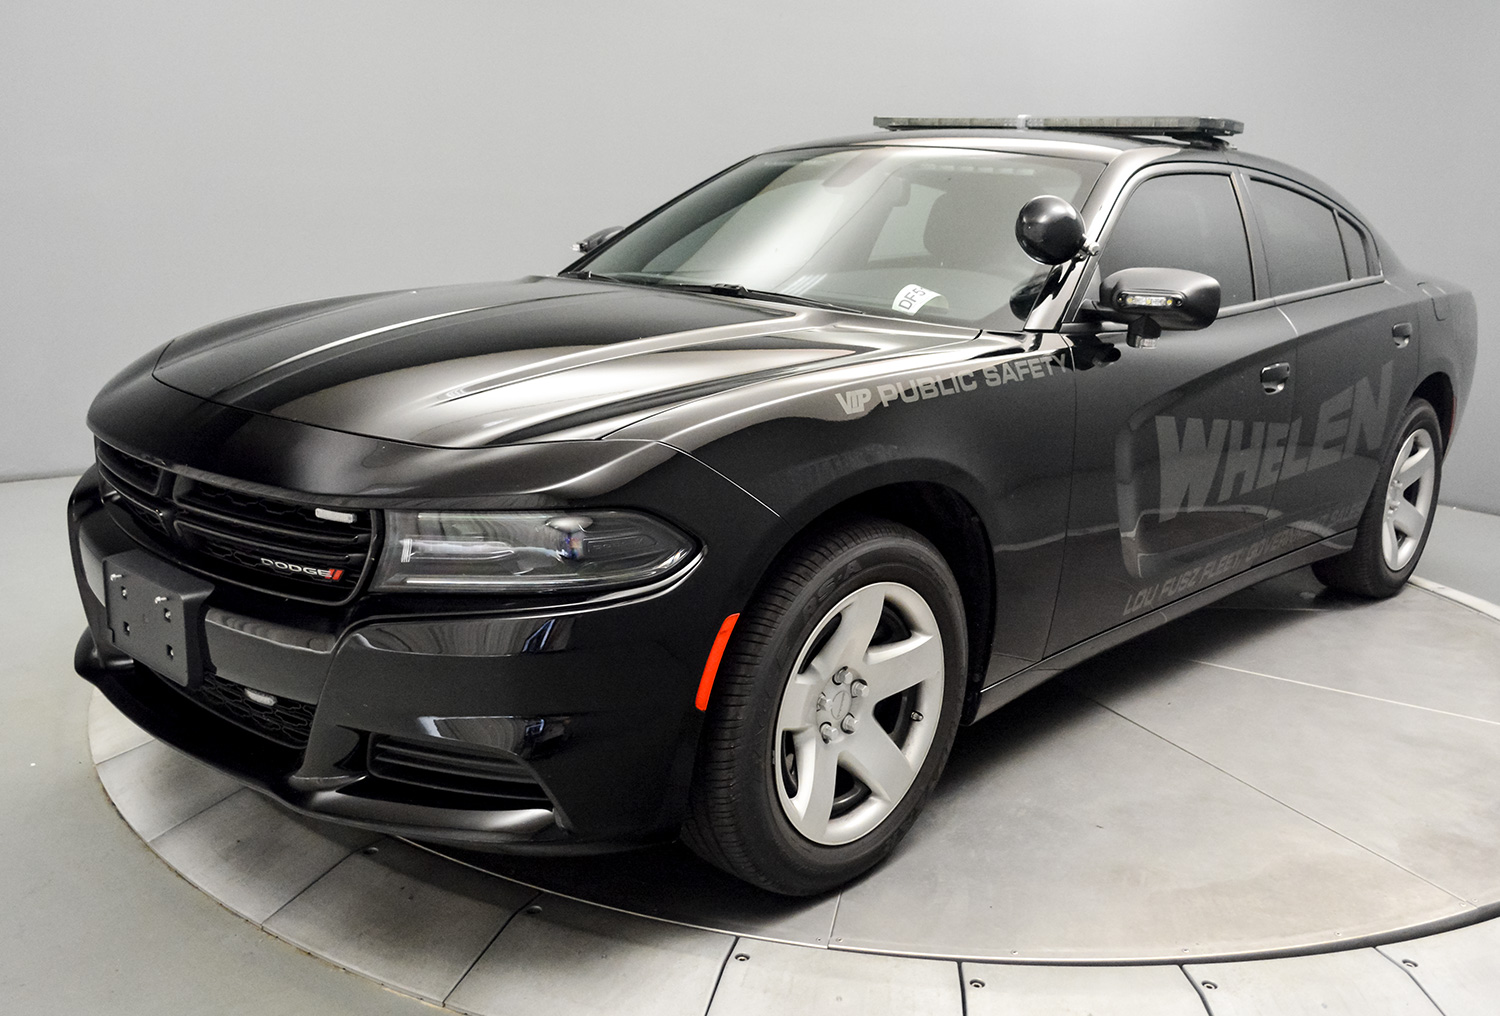 2017 Dodge Charger >> Completed VIP Police Vehicle Builds